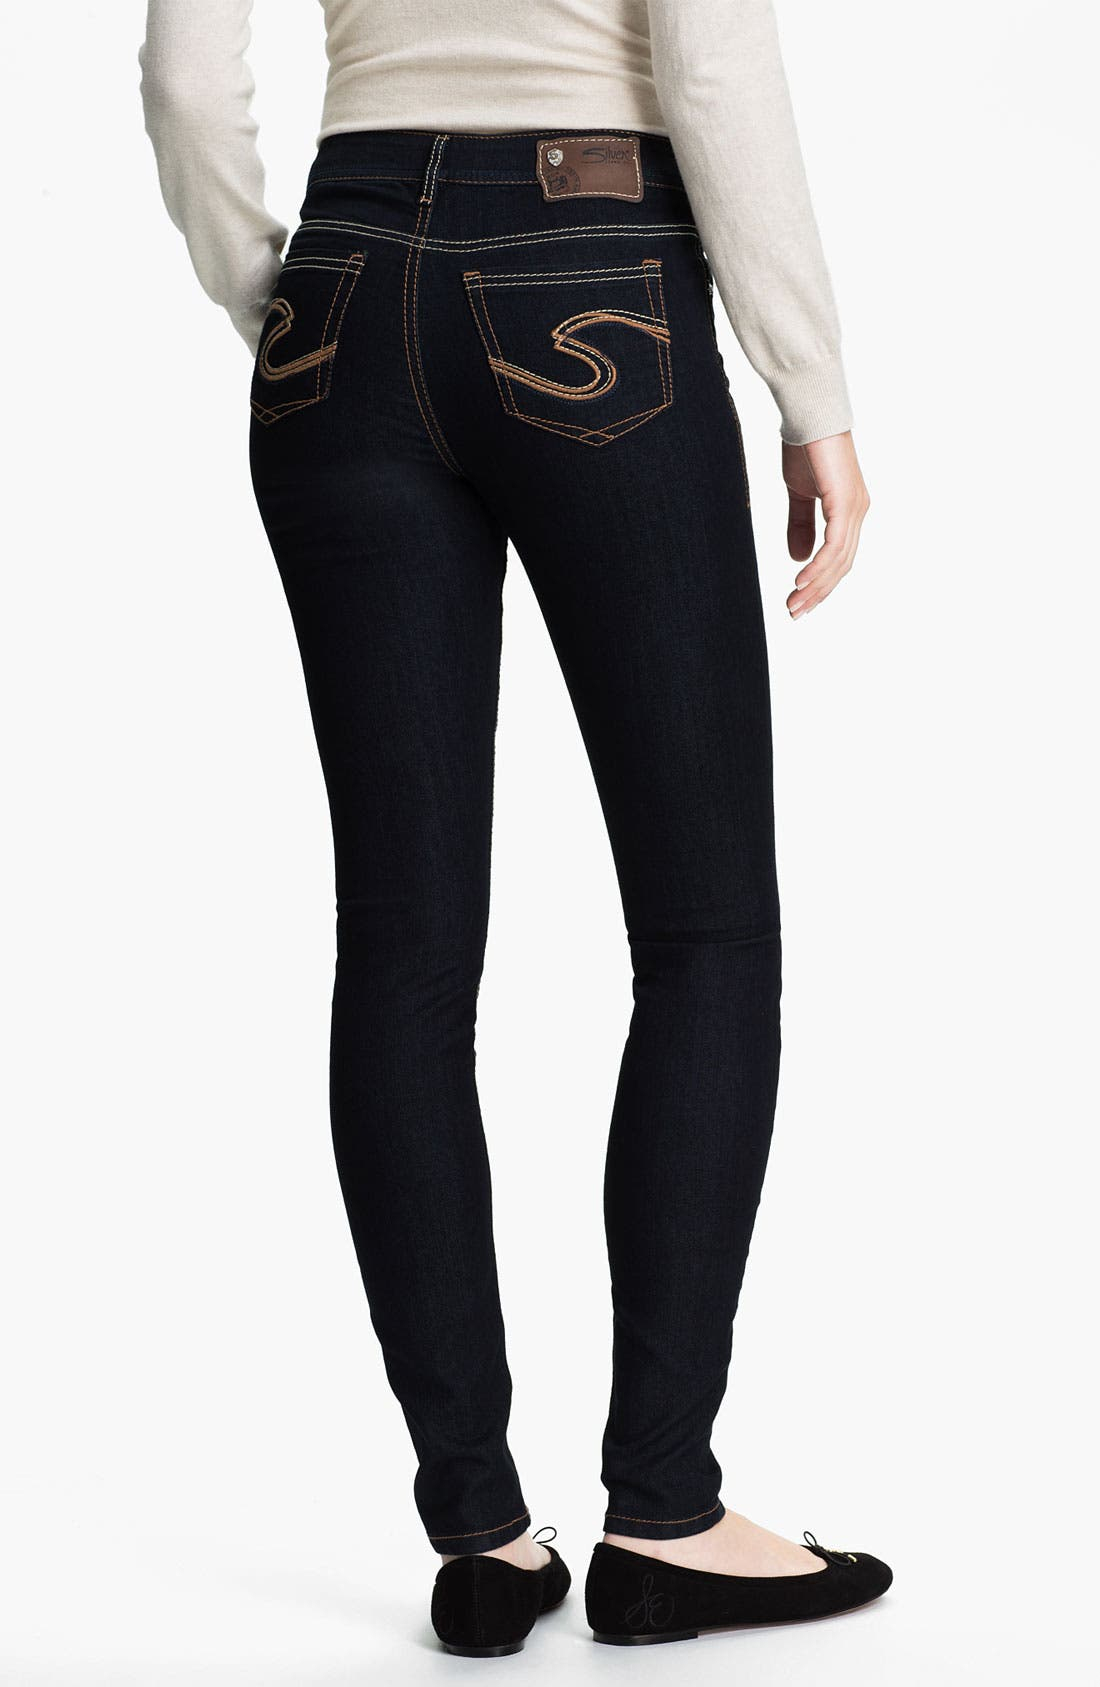 Main Image - Silver Jeans Co. Skinny Jeans (Juniors)